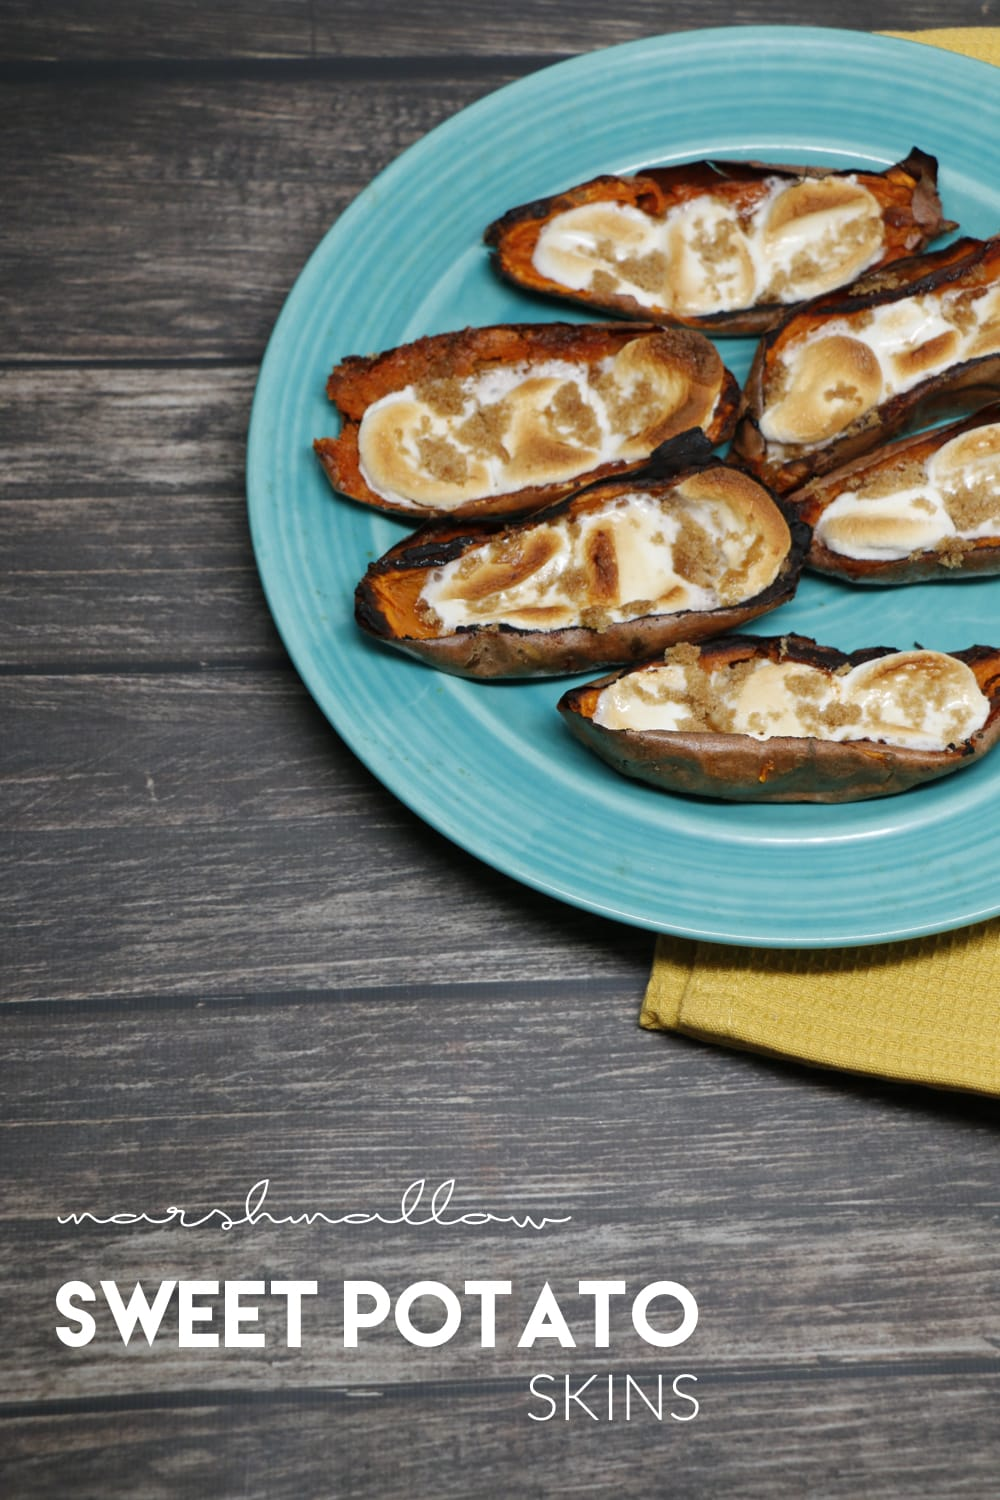 Marshmallow Sweet Potato Skins Recipe